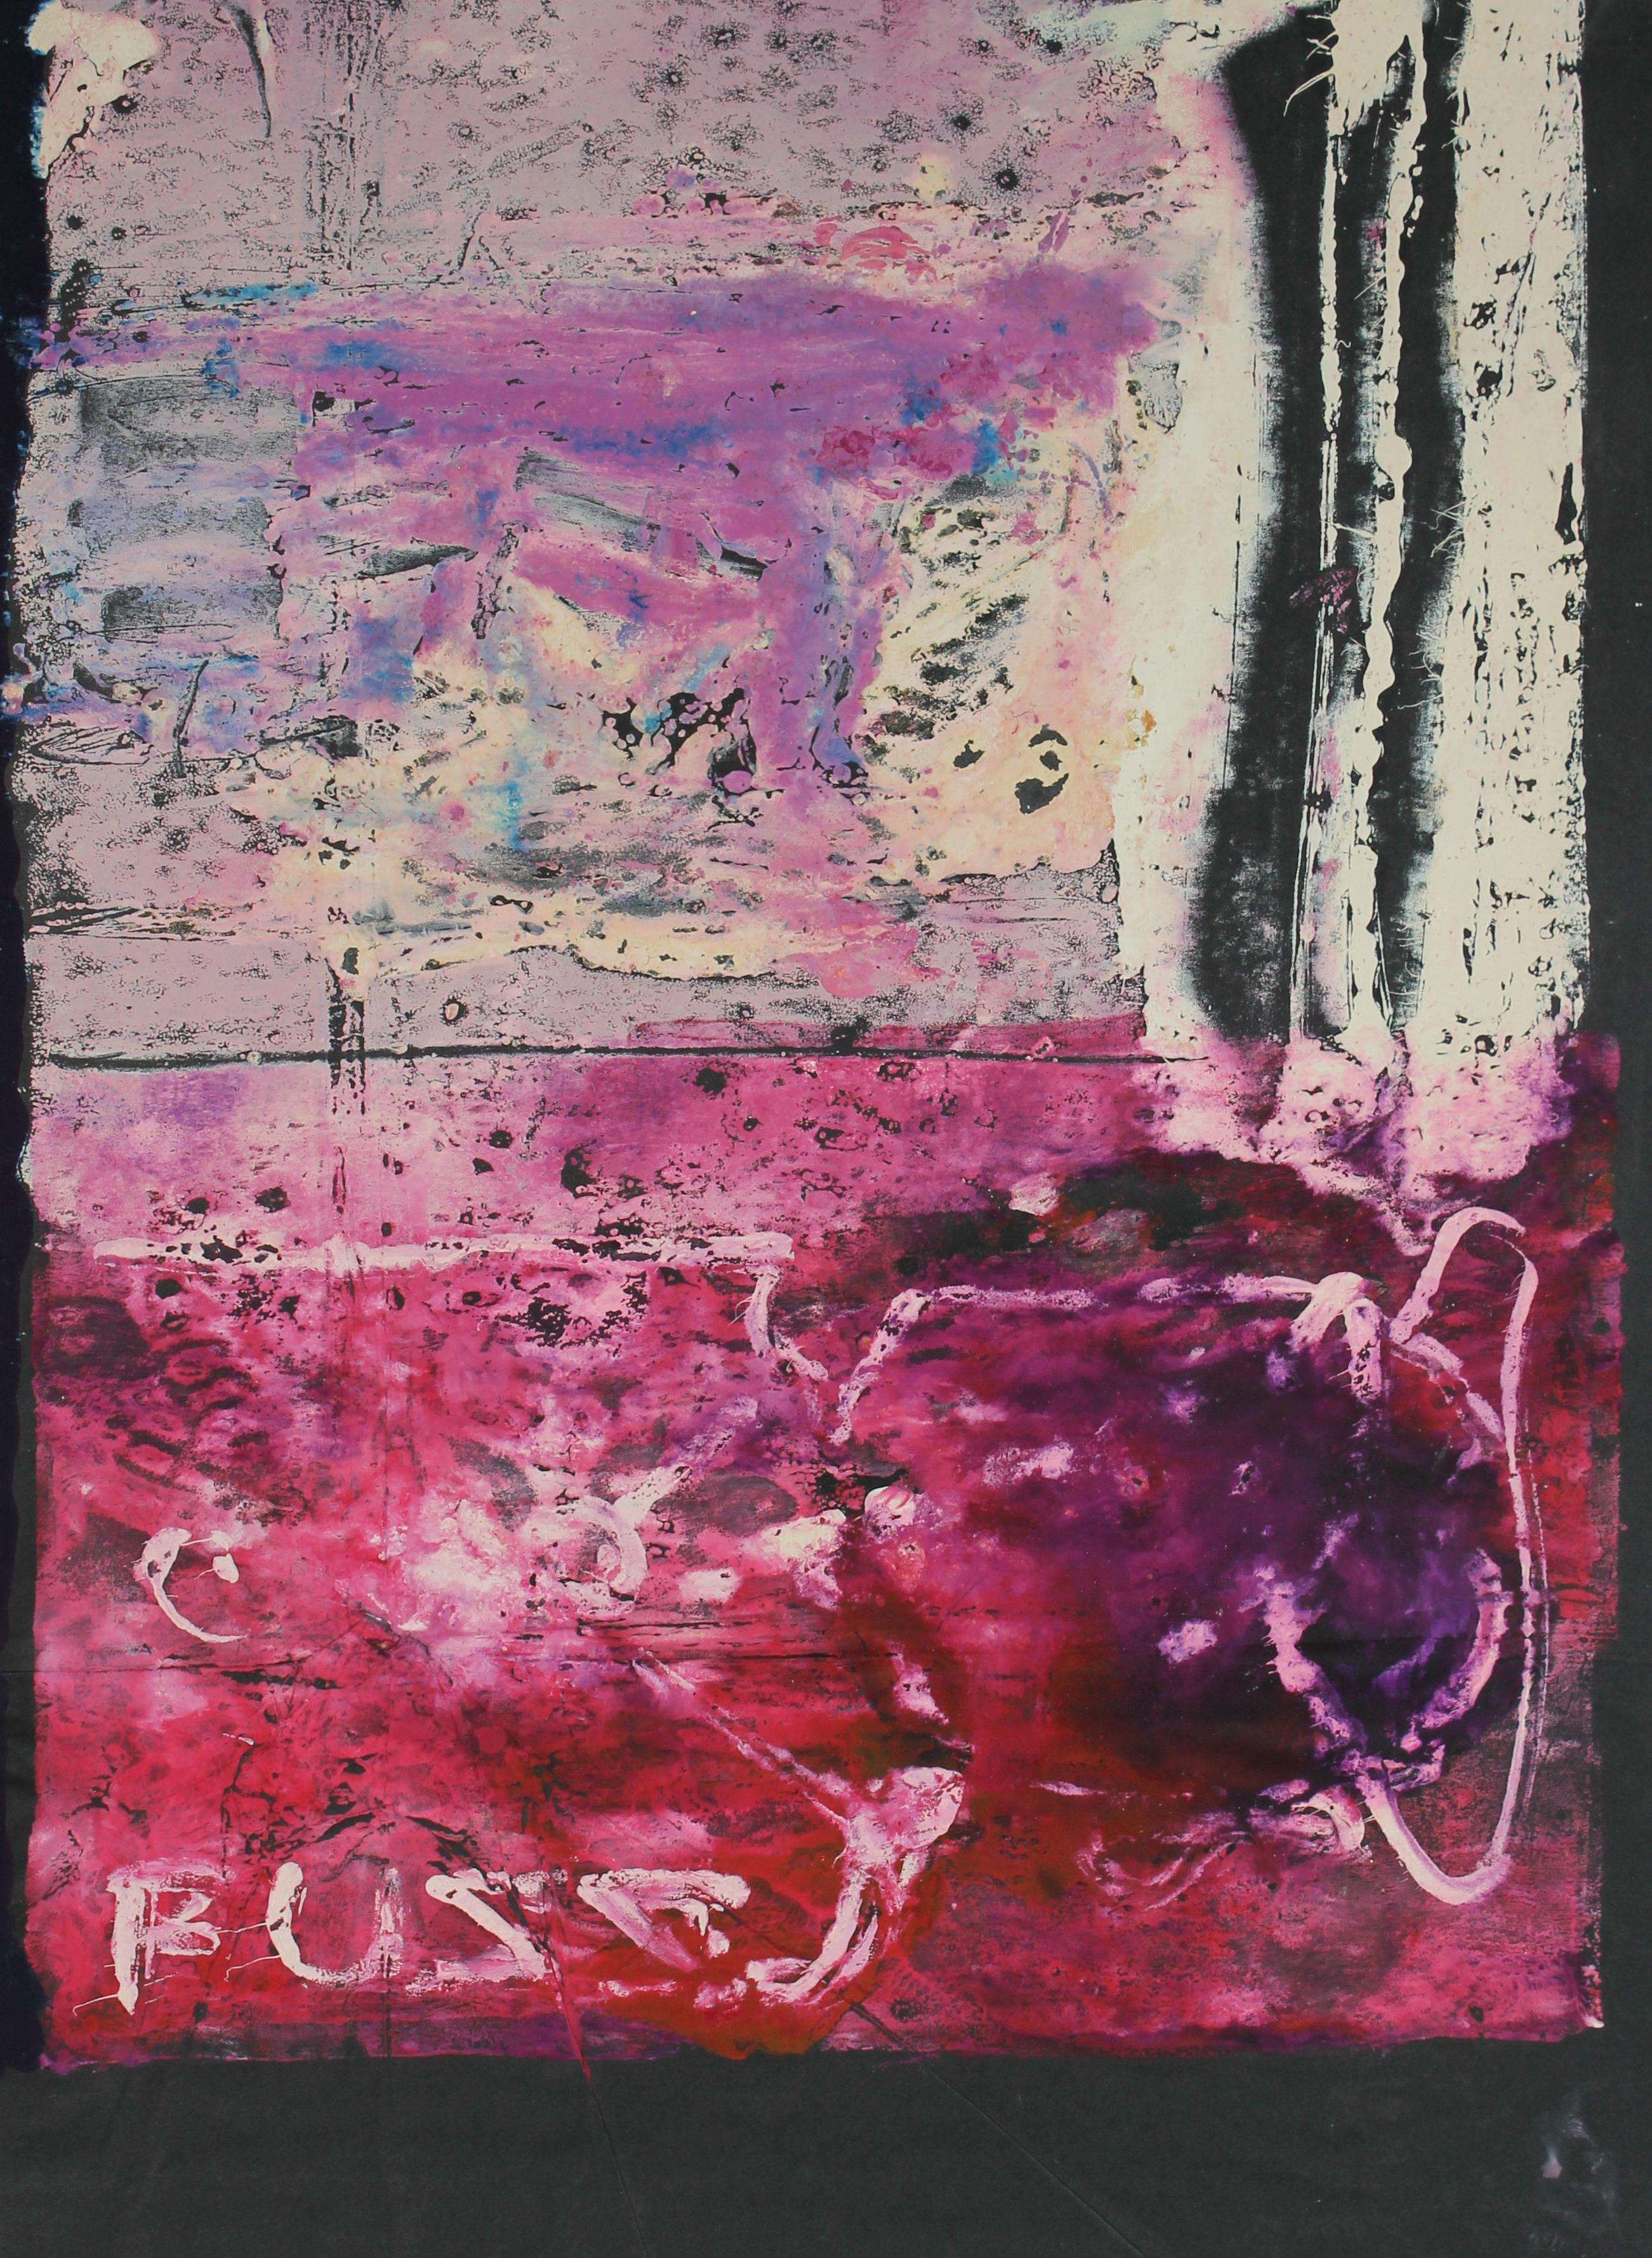 Bright Abstract Dye Transfer Print on Paper in Pink Red Purple Black and Gray